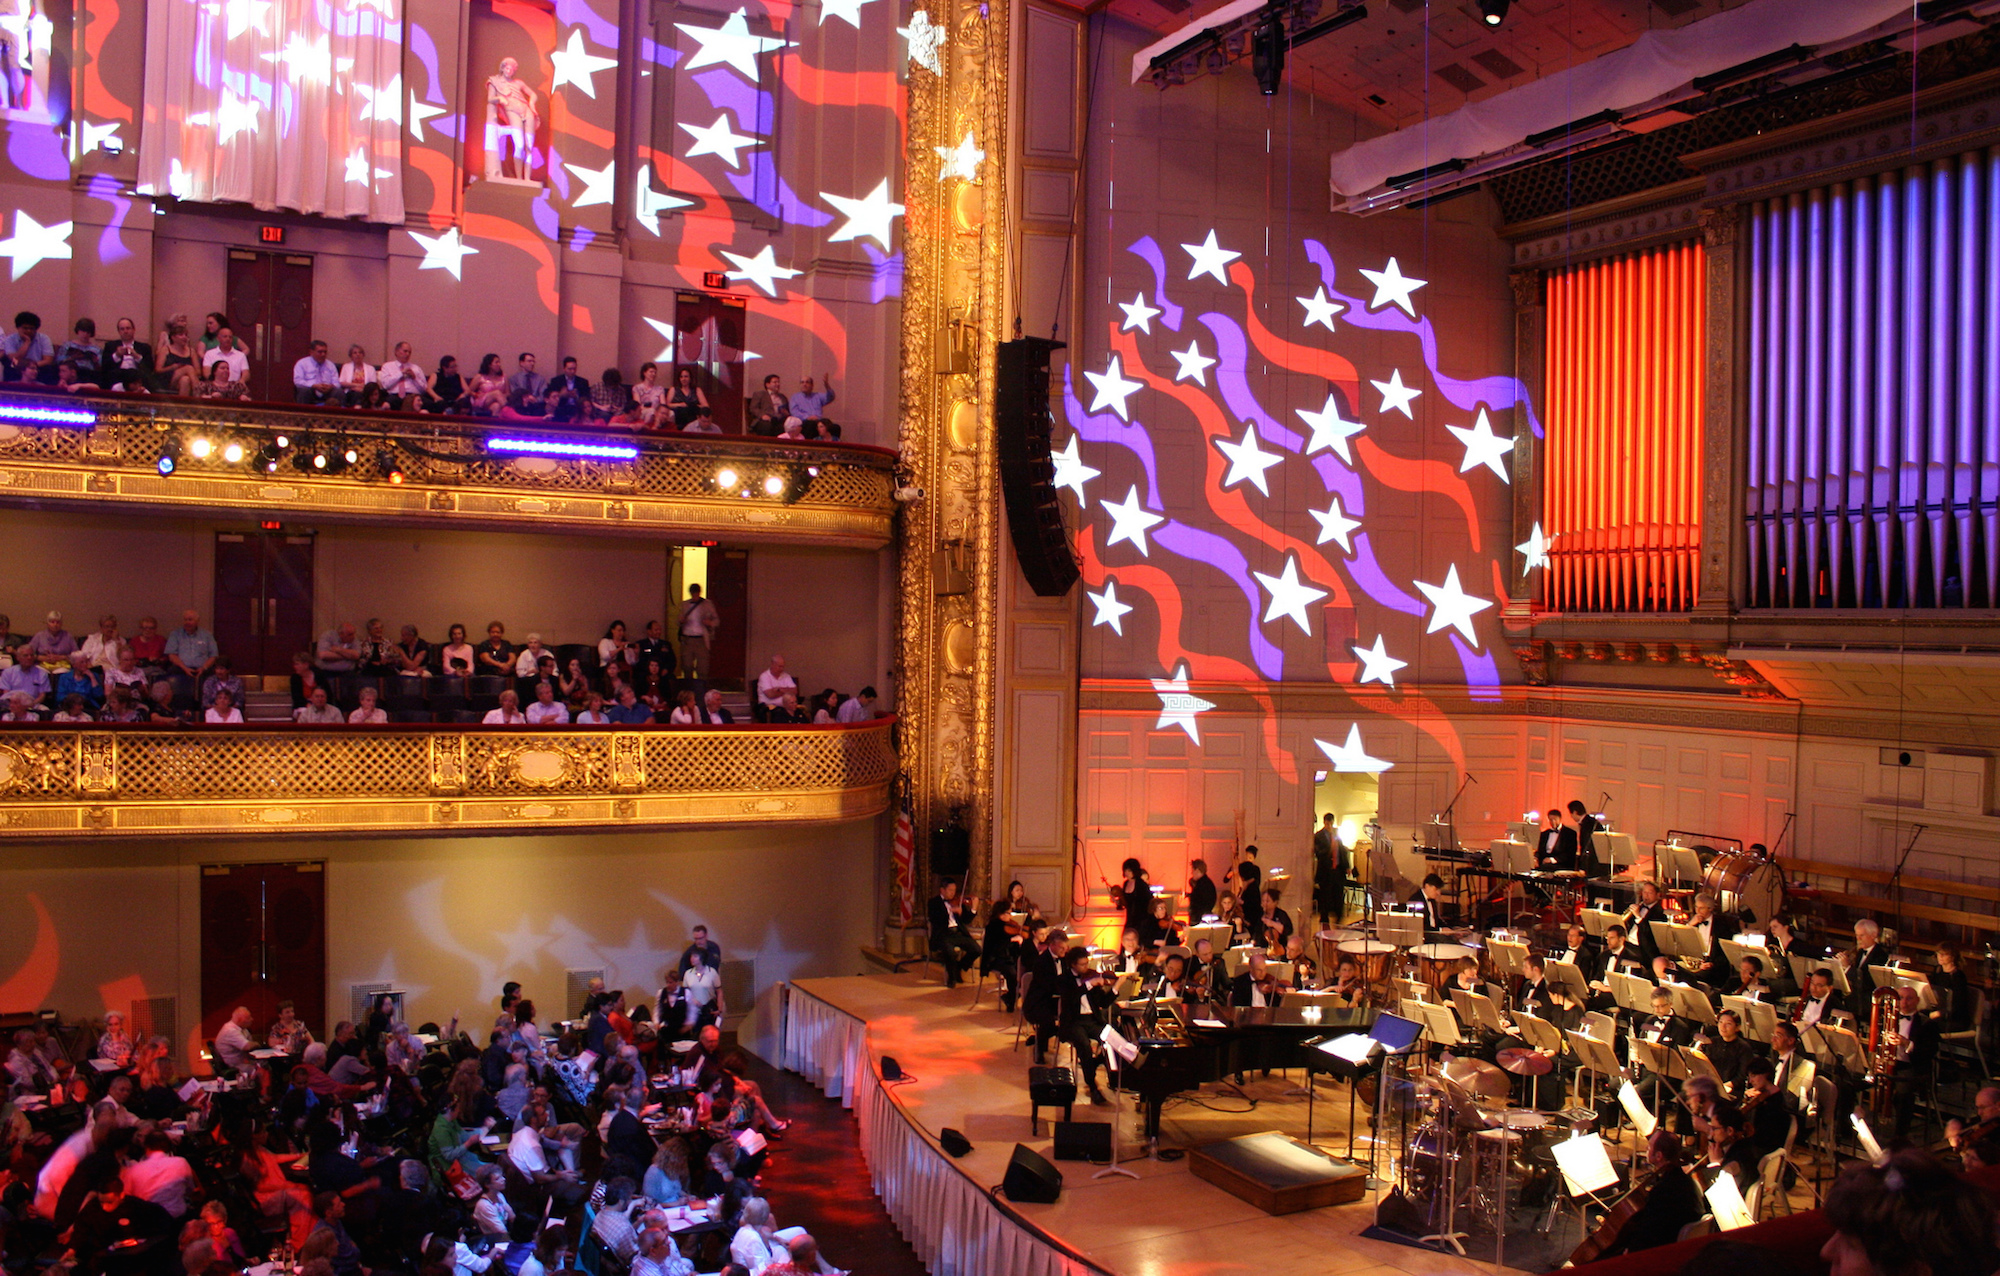 The Boston Pops in concert (credit: Flickr/derekbruff)